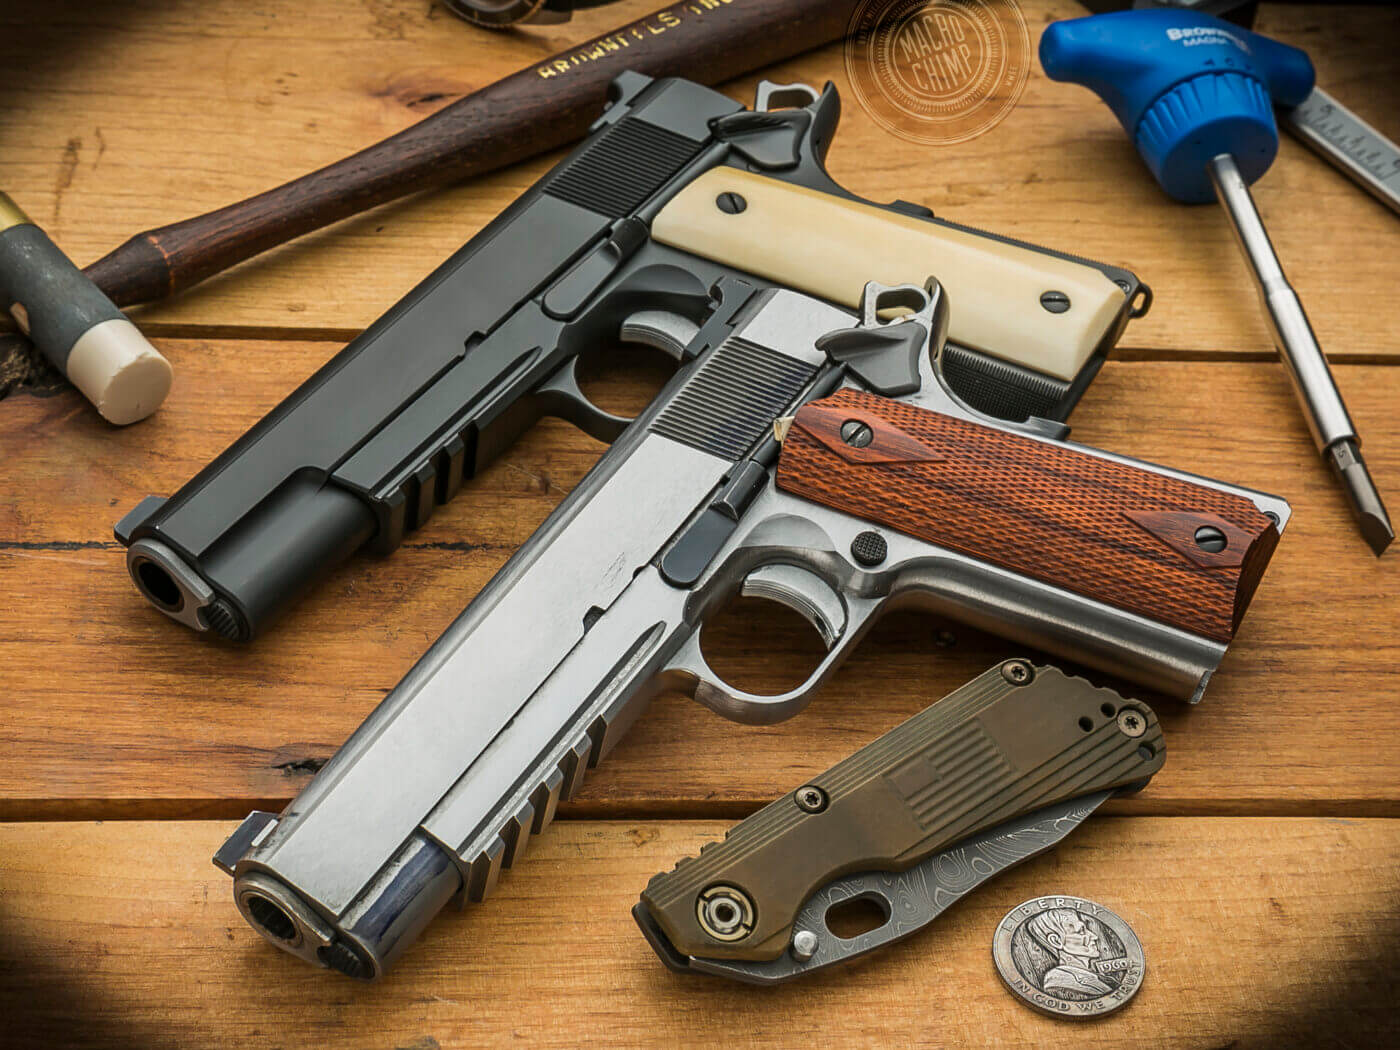 Custom built Springfield 1911 pistols on a table with tools